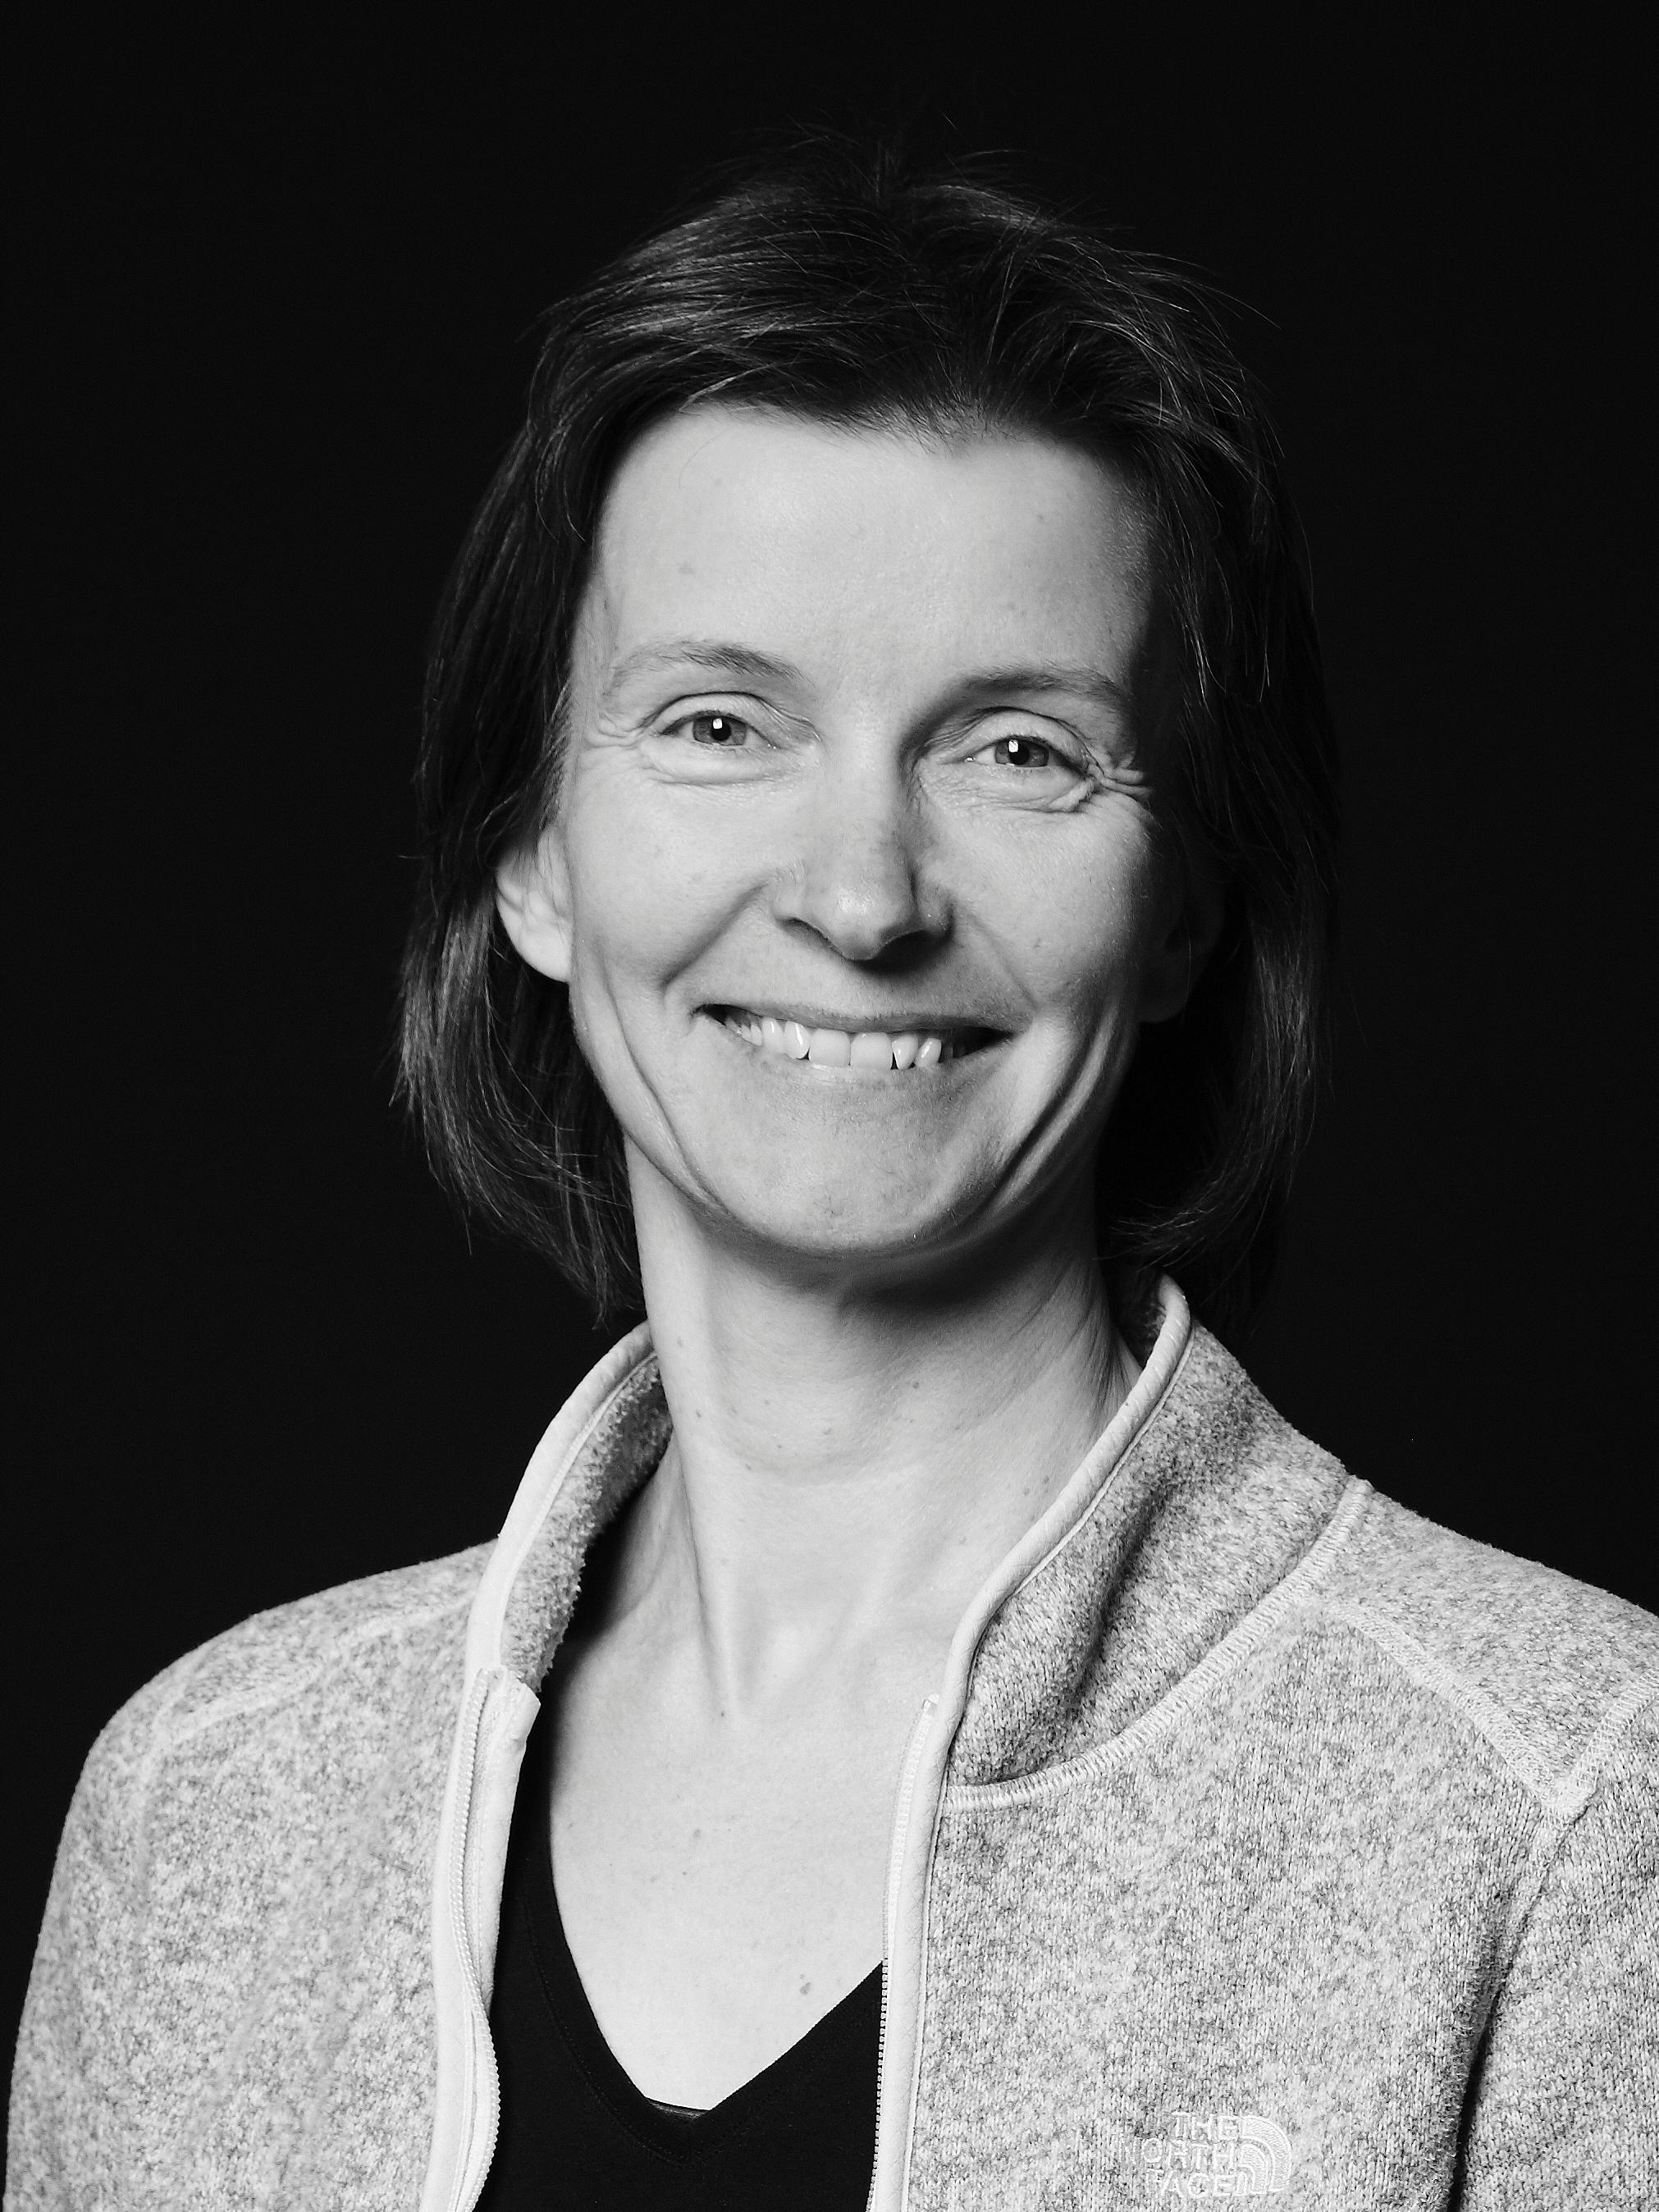 Photo of Hanne Mette Ochsner Ridder